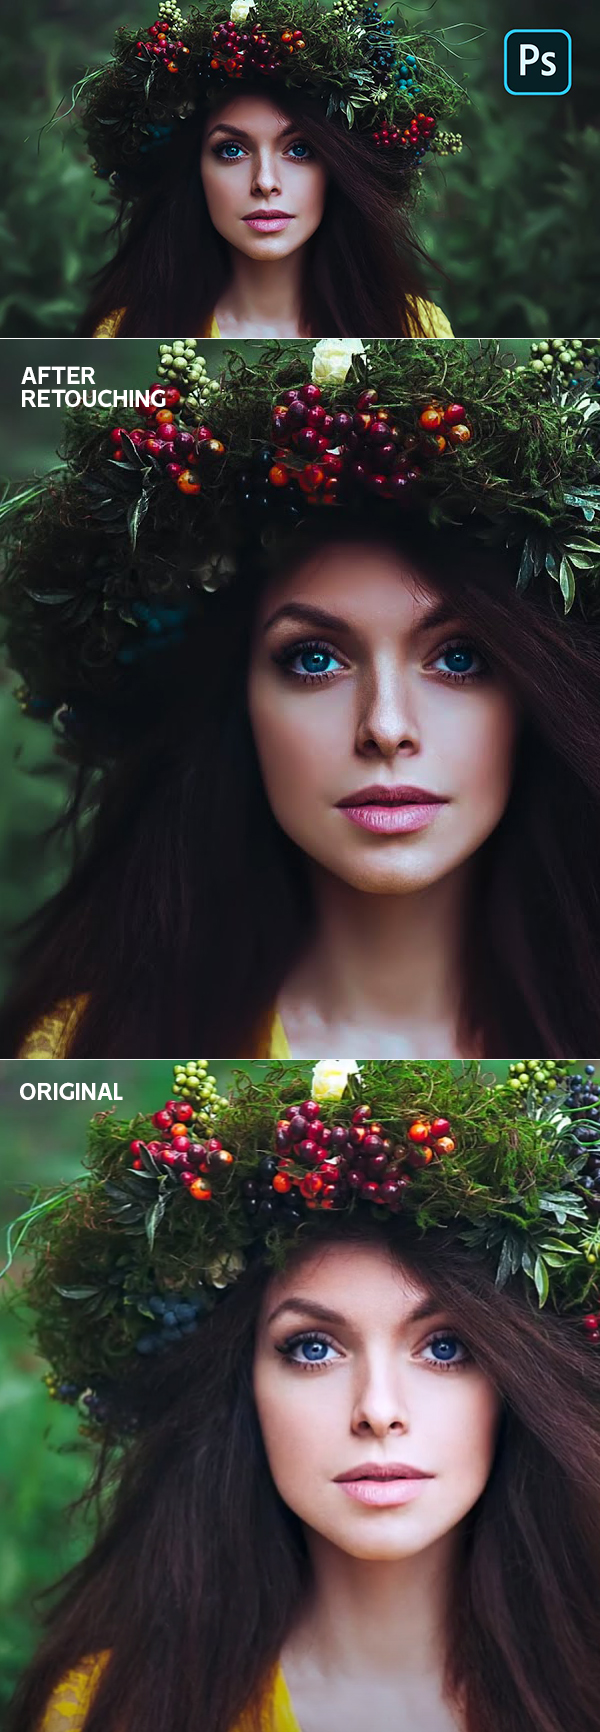 How to Create Artistic Cinematic Teal Color Tone Photo Effect in Photoshop Tutorial